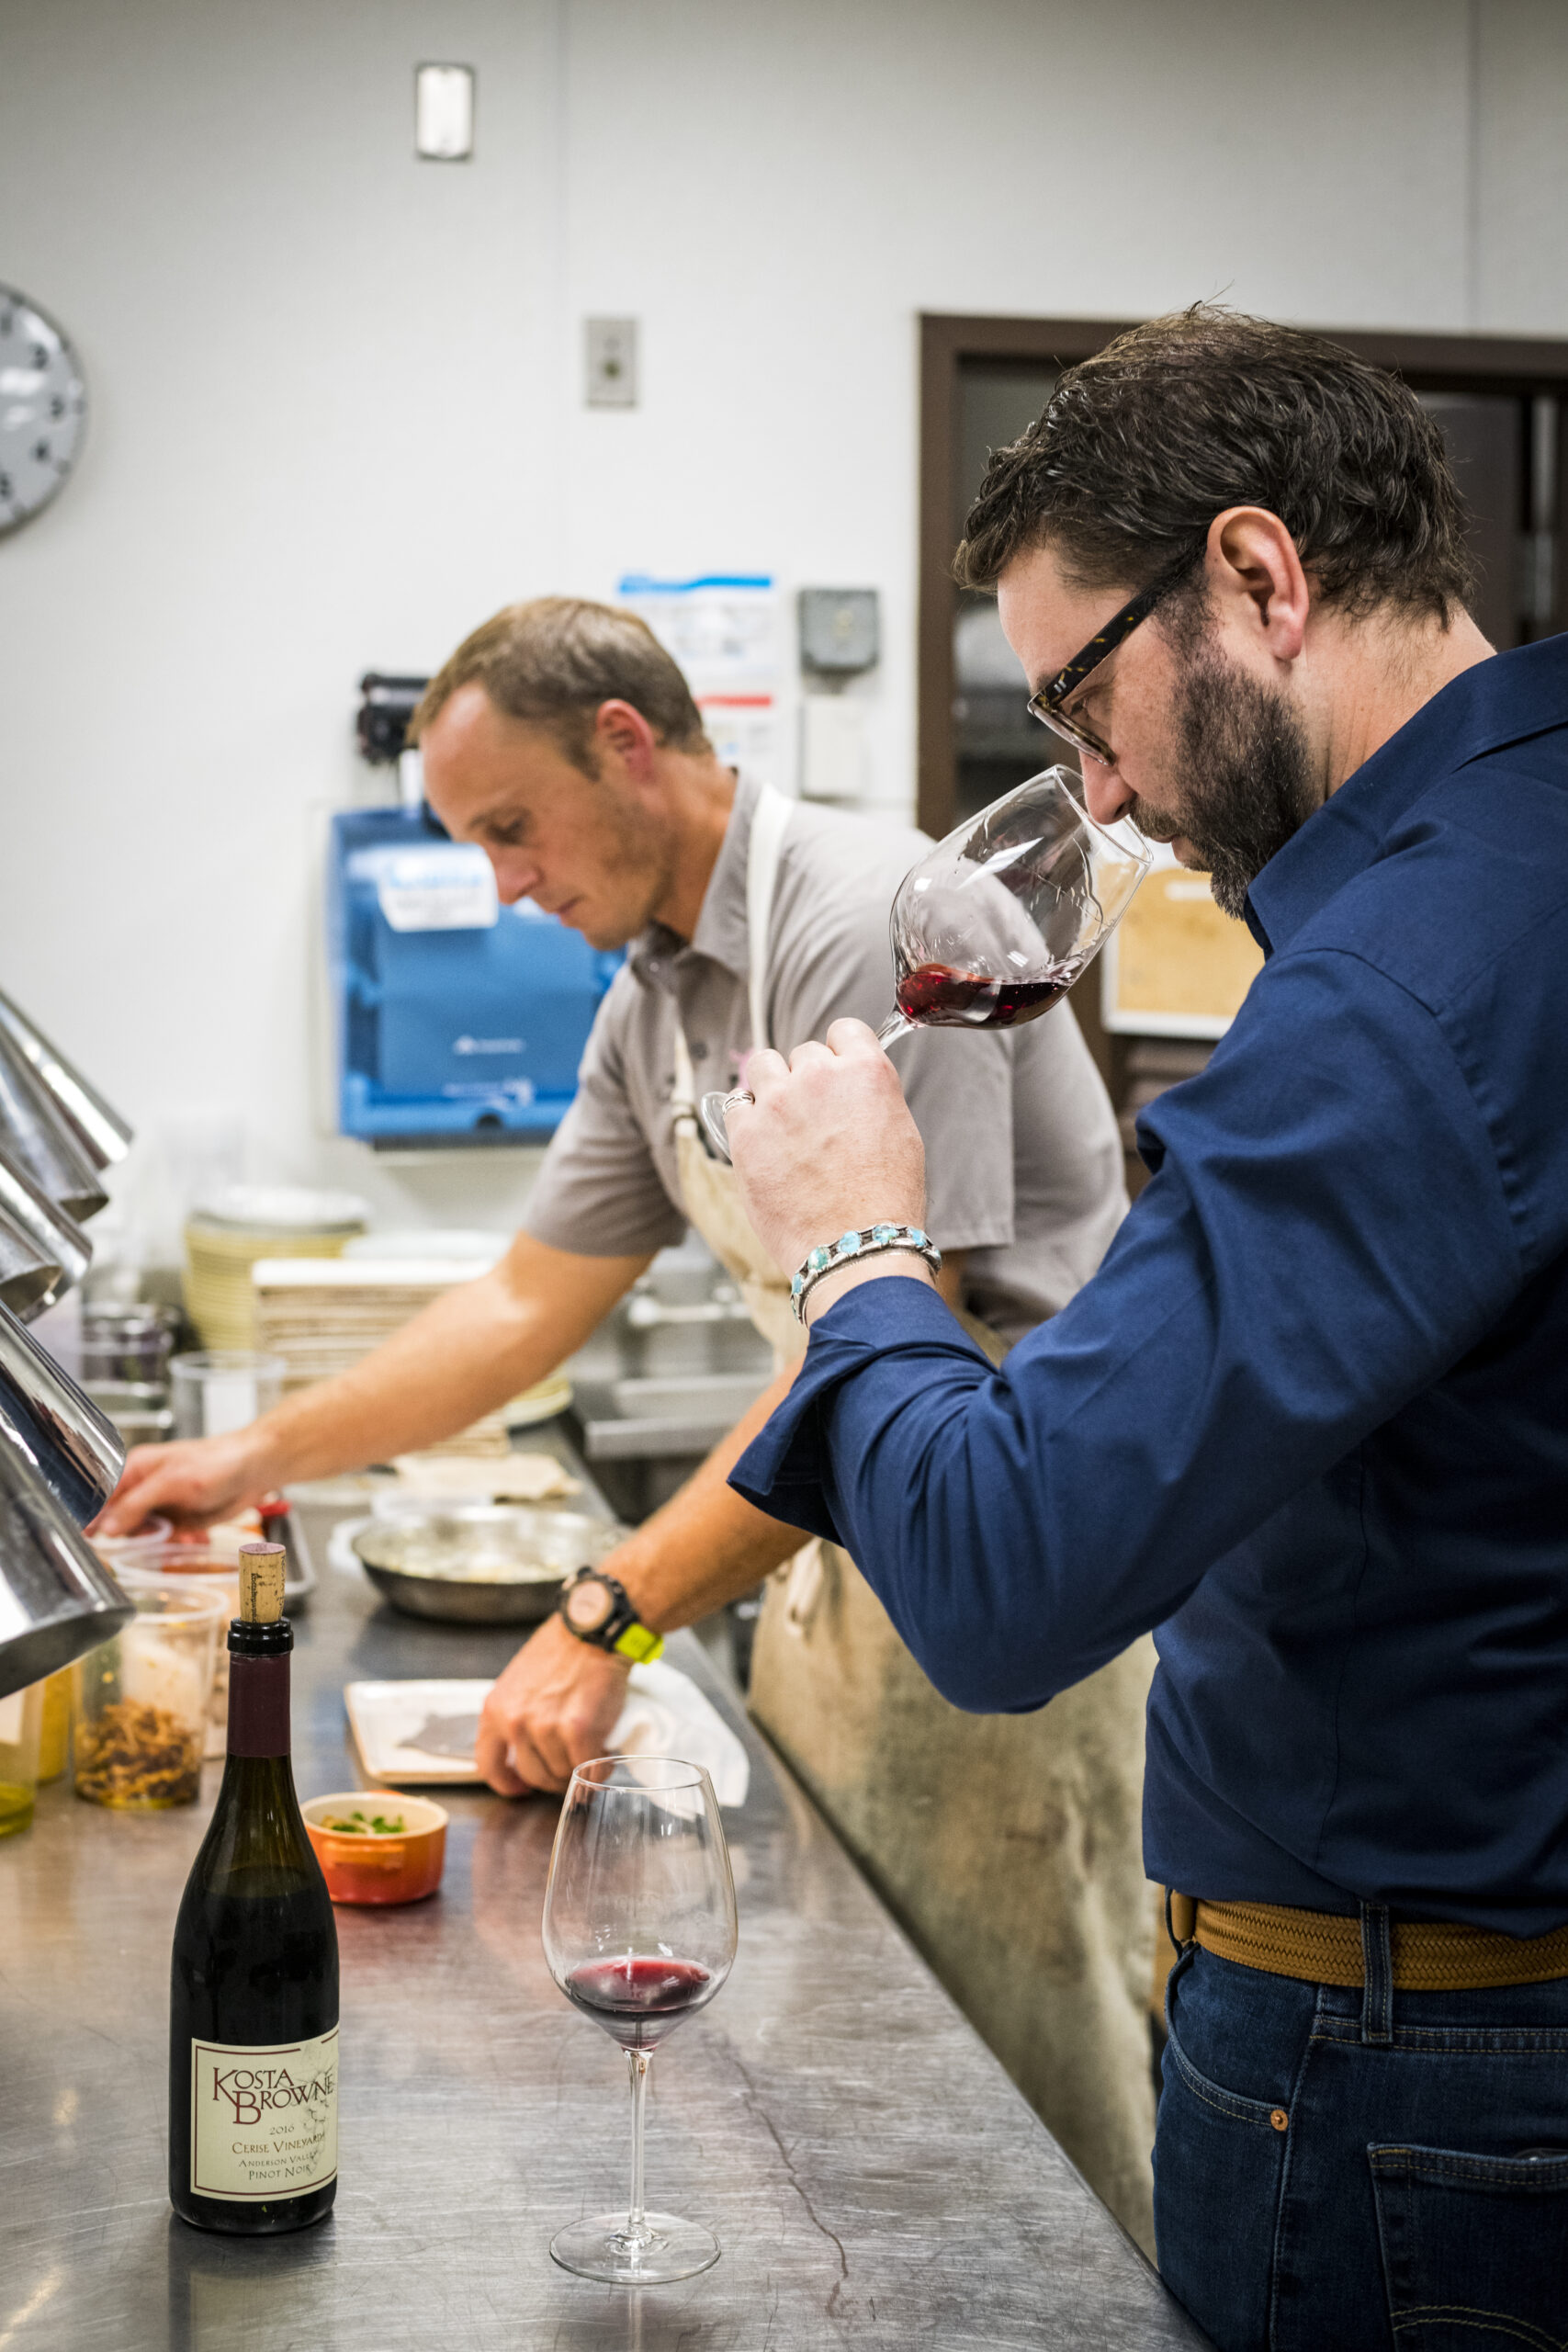 Nico the winemaker and Mike the chef go to work